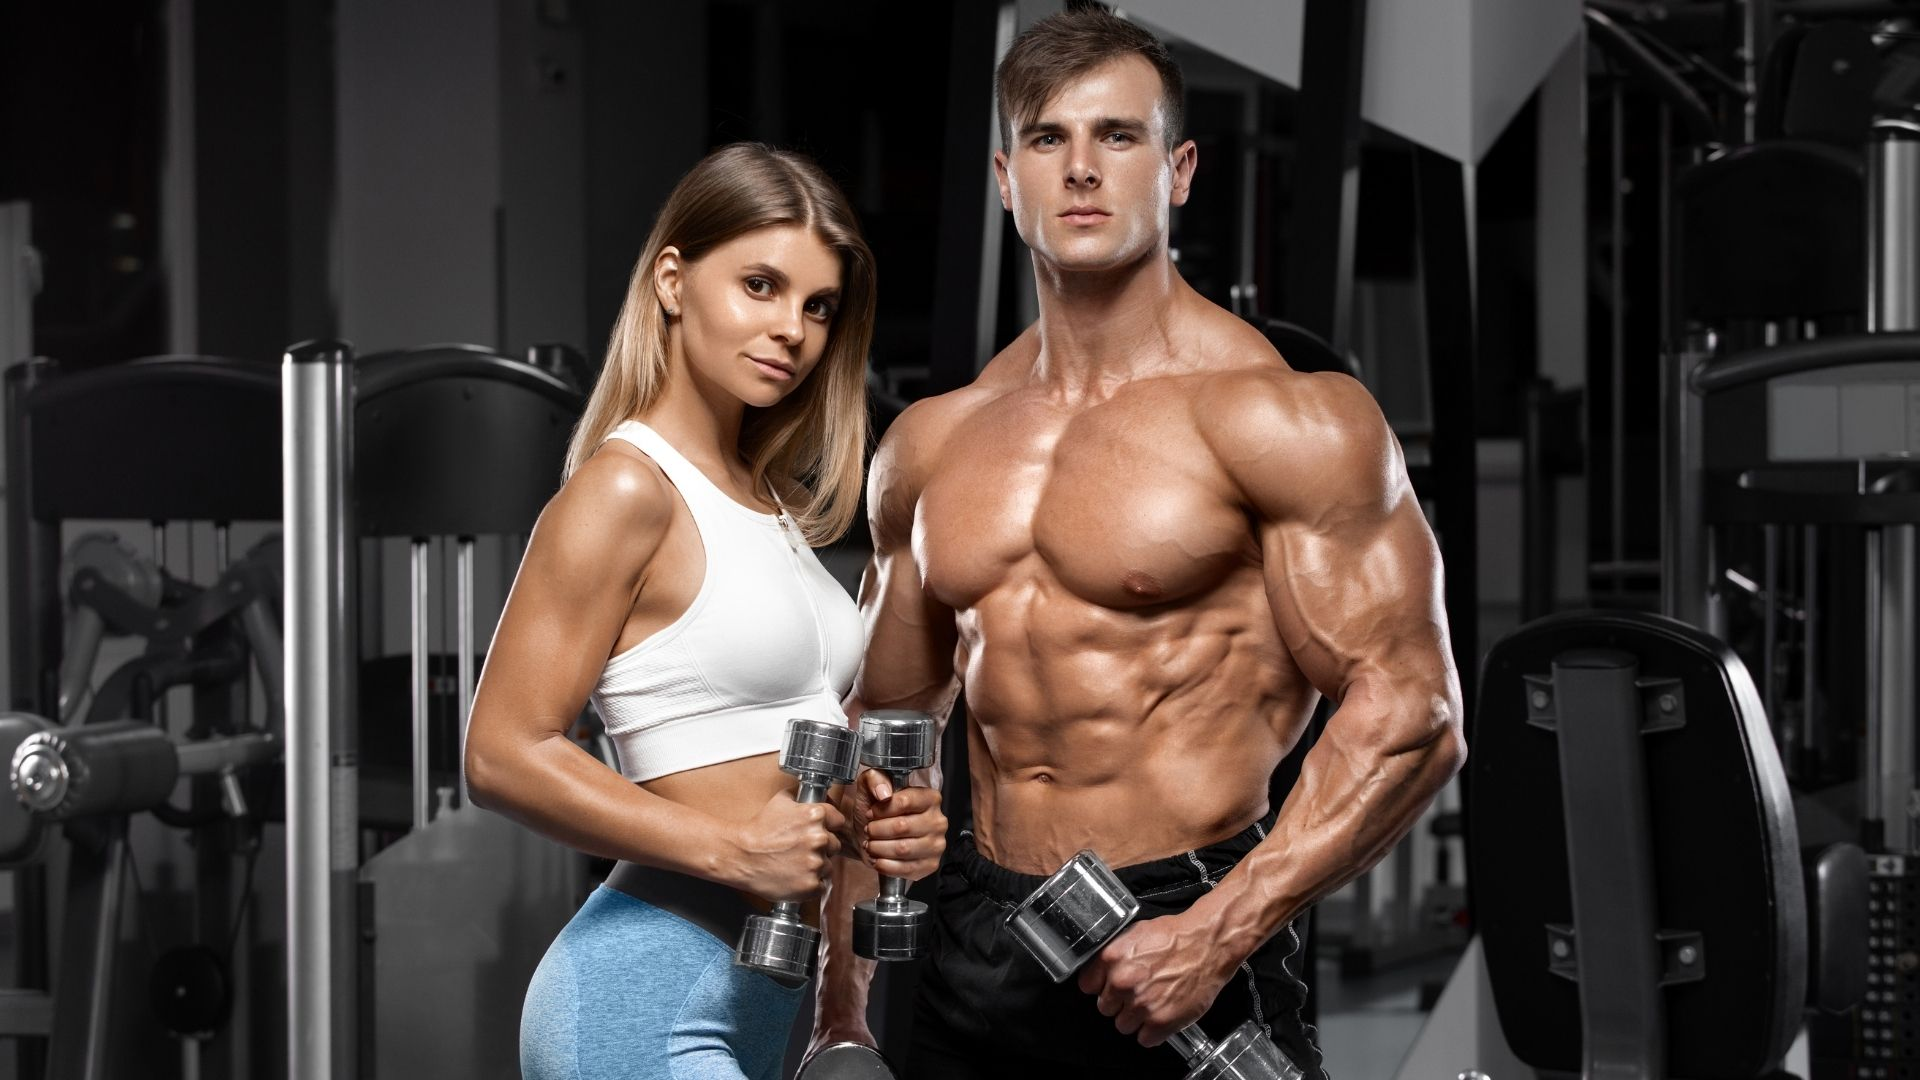 Body building couple joining rypt